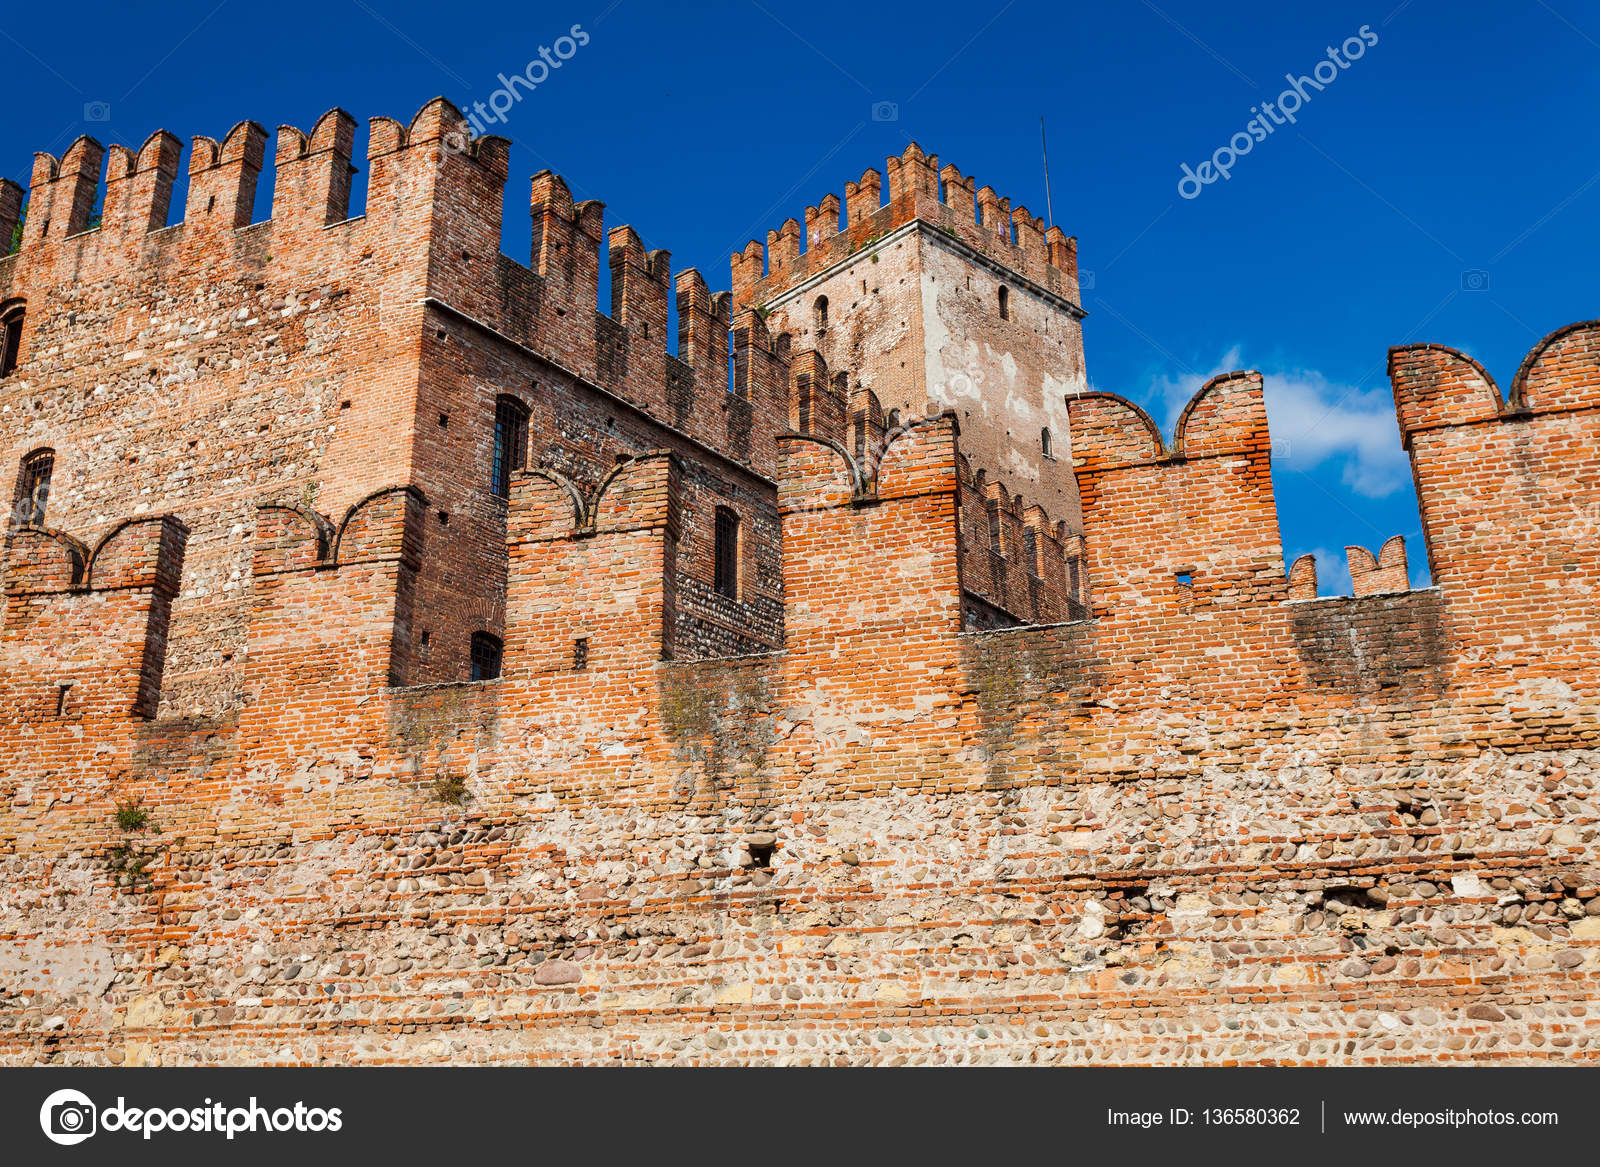 the medieval castelvecchio old castle was built between 1354 and 1356 by order of cangrande ii della scala photo by zazamaza